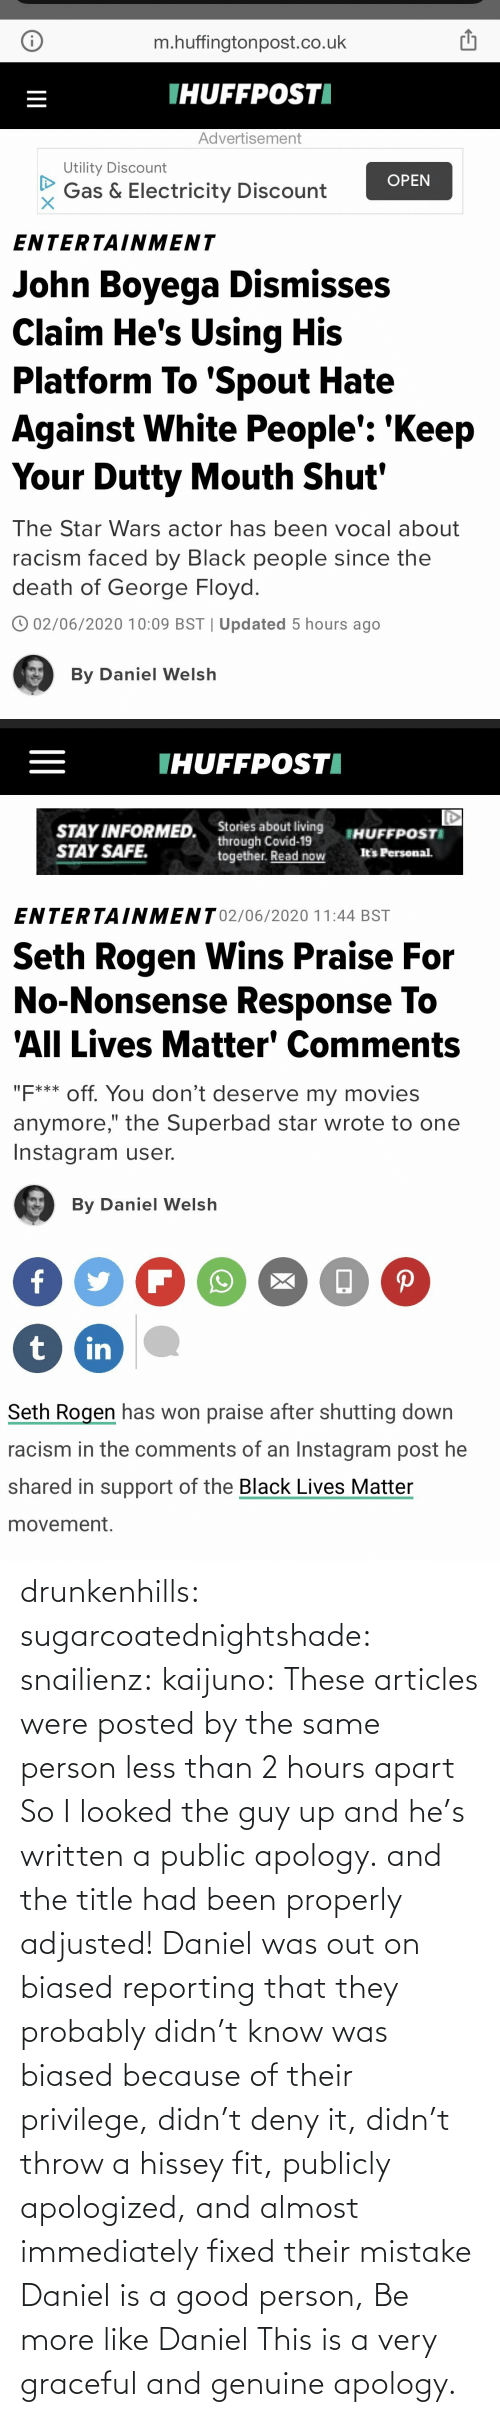 Didn: drunkenhills: sugarcoatednightshade:   snailienz:  kaijuno: These articles were posted by the same person less than 2 hours apart    So I looked the guy up and he's written a public apology. and the title had been properly adjusted!    Daniel was out on biased reporting that they probably didn't know was biased because of their privilege, didn't deny it, didn't throw a hissey fit, publicly apologized, and almost immediately fixed their mistake Daniel is a good person, Be more like Daniel     This is a very graceful and genuine apology.